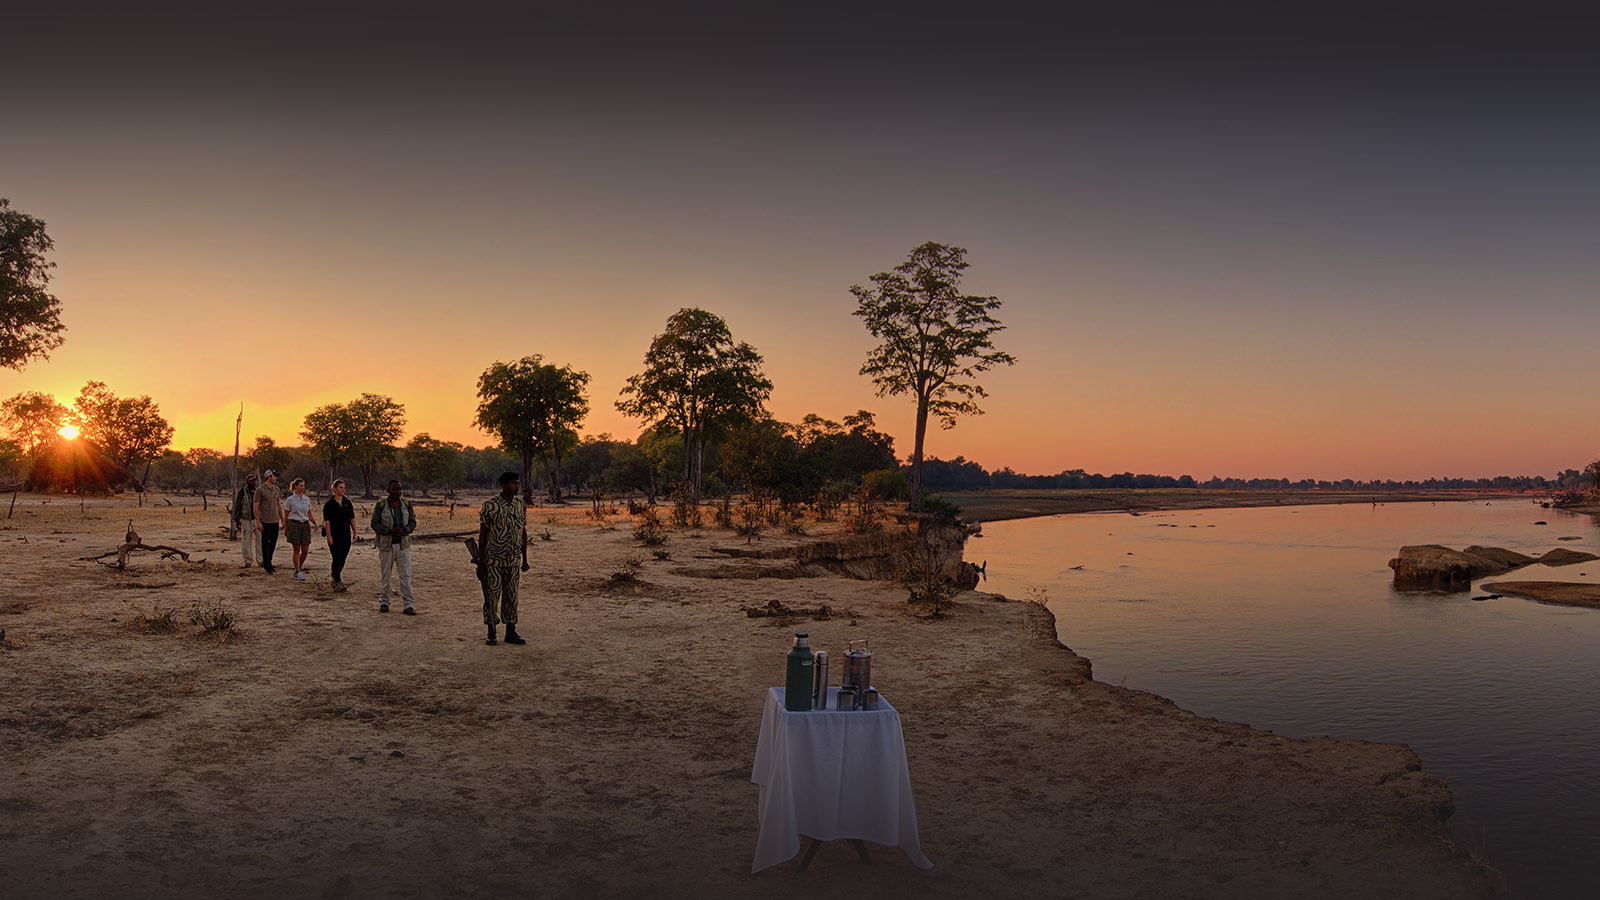 kakuli-beautiful-camp-lodge-zambia-in-style-tours-safari-packages-lodges-explore-south-luangwa-national-park-walking-safari